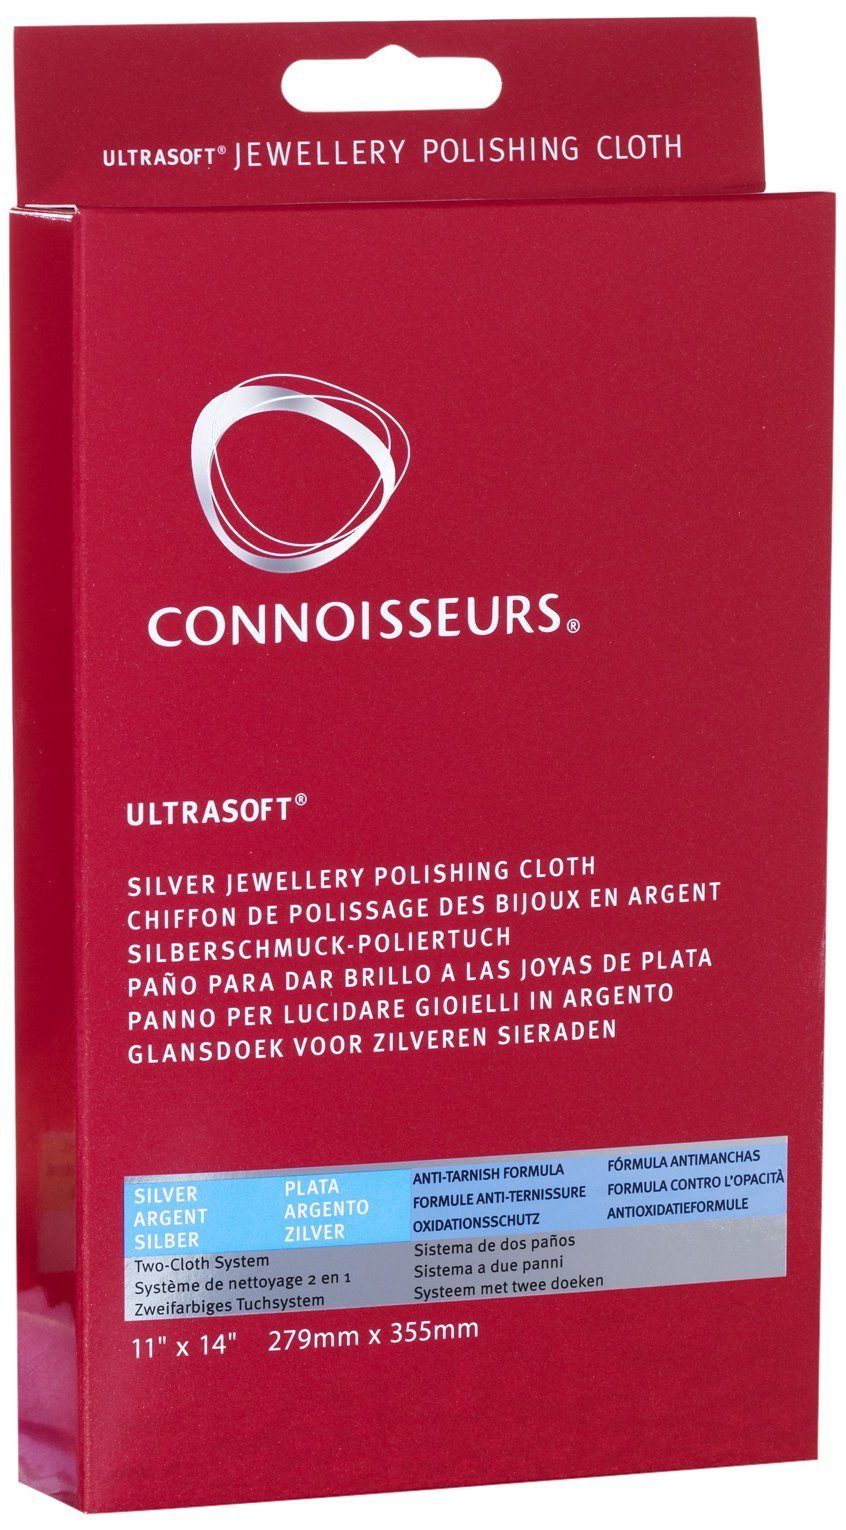 Connoisseurs Silver Jewellery Cleaning Cloth - Ultrasoft Polishing Cloths to Clean, Buff & Restore Shine - 100% Cotton Fiber - 28 x 35cm